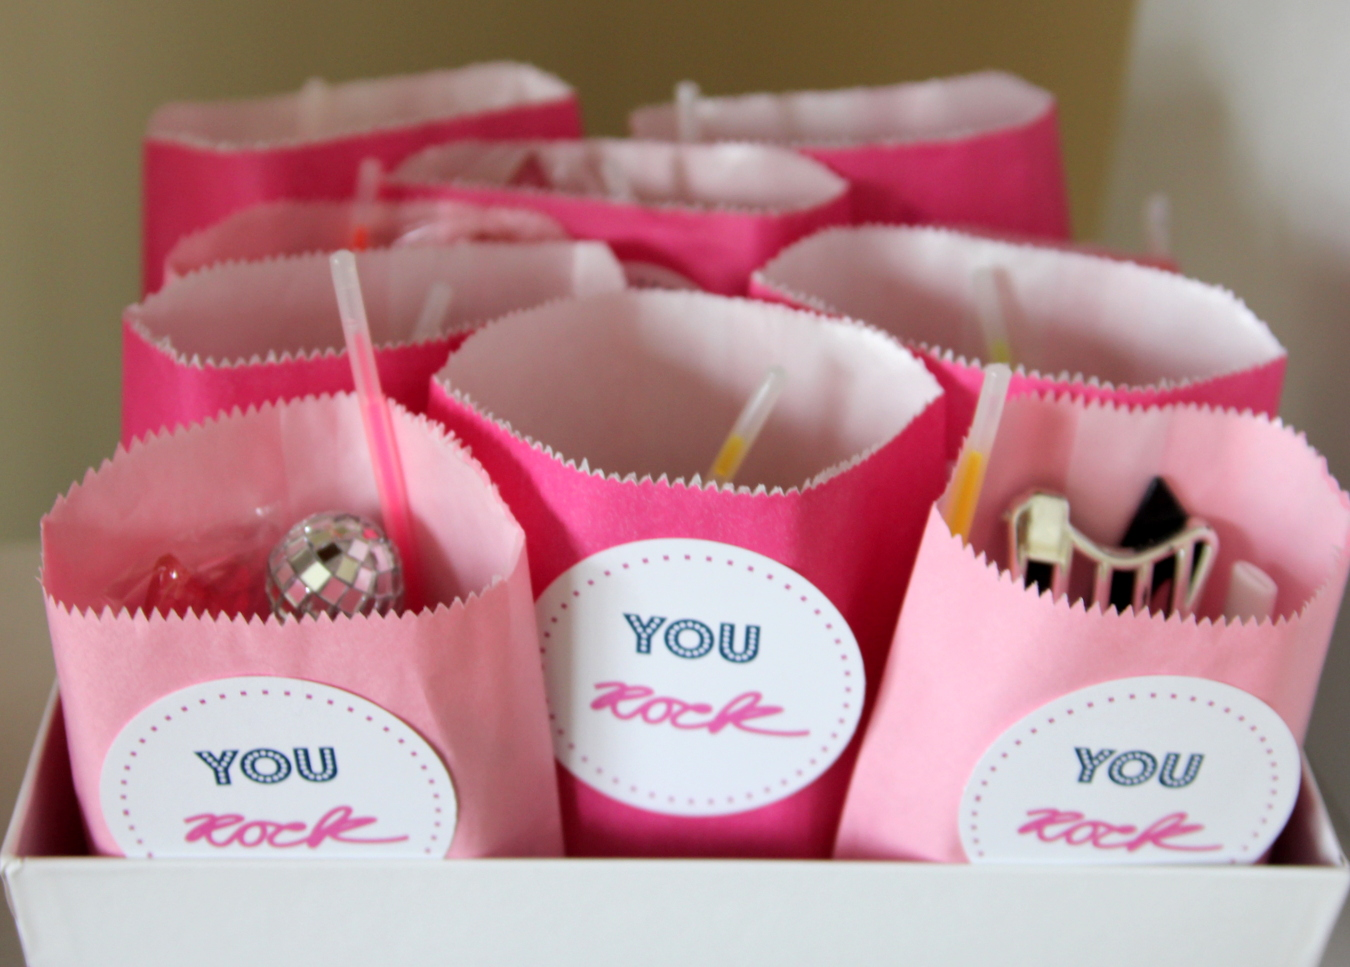 Time to party like a rock star! This sweet rock star birthday party includes all sorts of party ideas- like these cute rock star party favors!